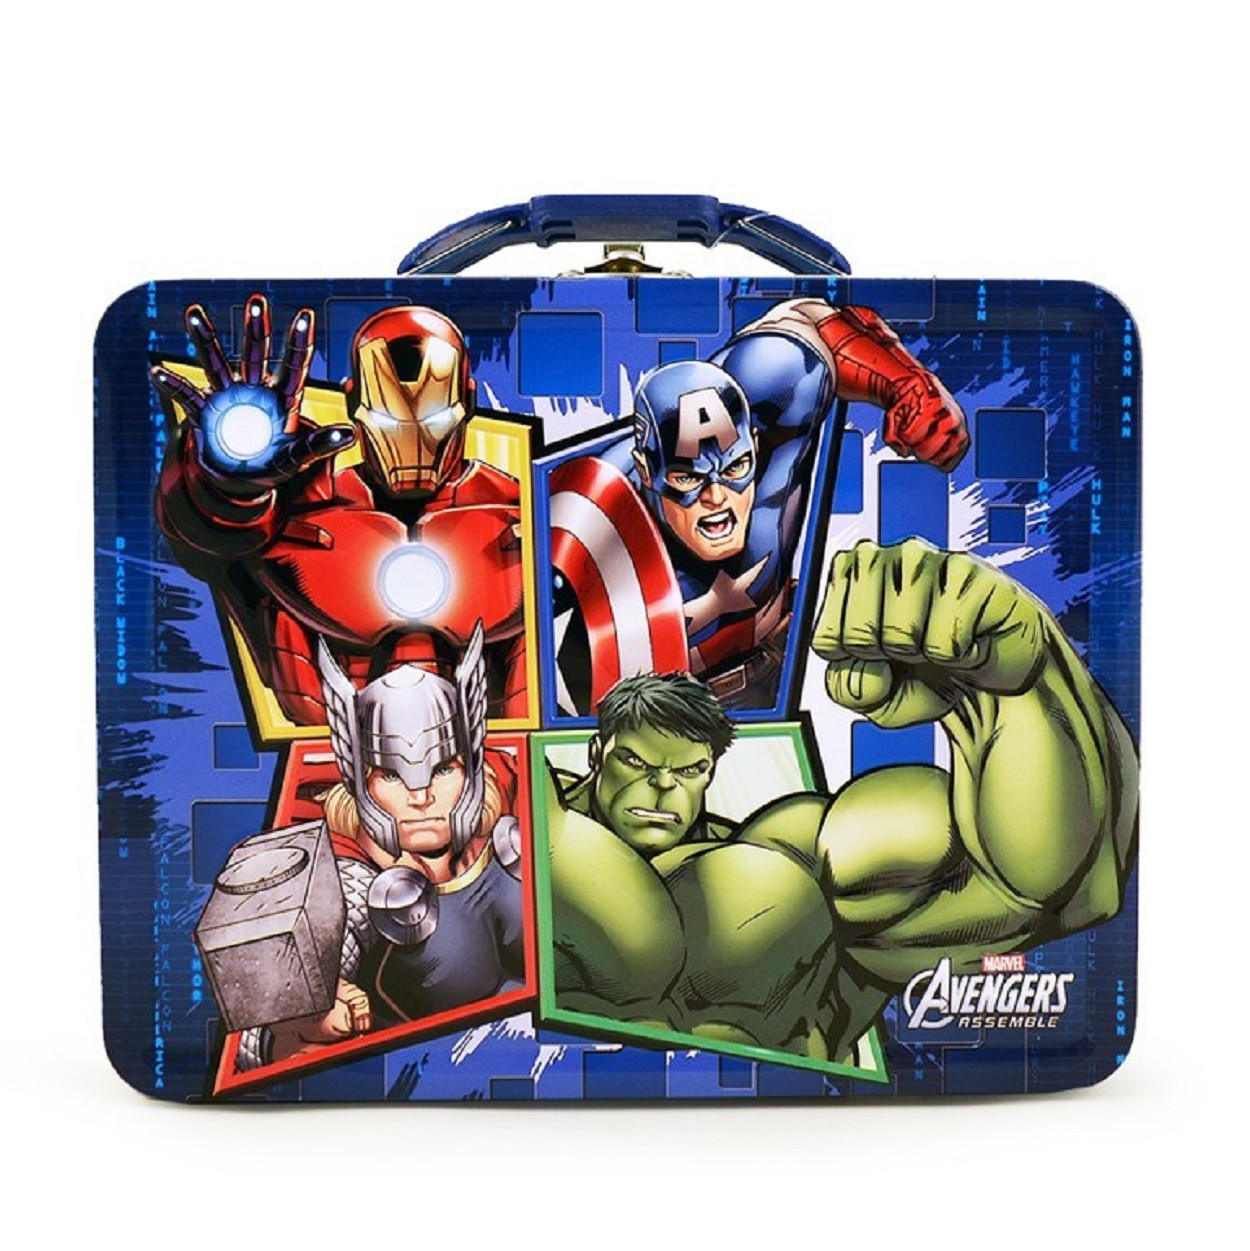 Avengers Assemble Square Tin Carry All Stationery Small Lunch Box  - Blue Handle